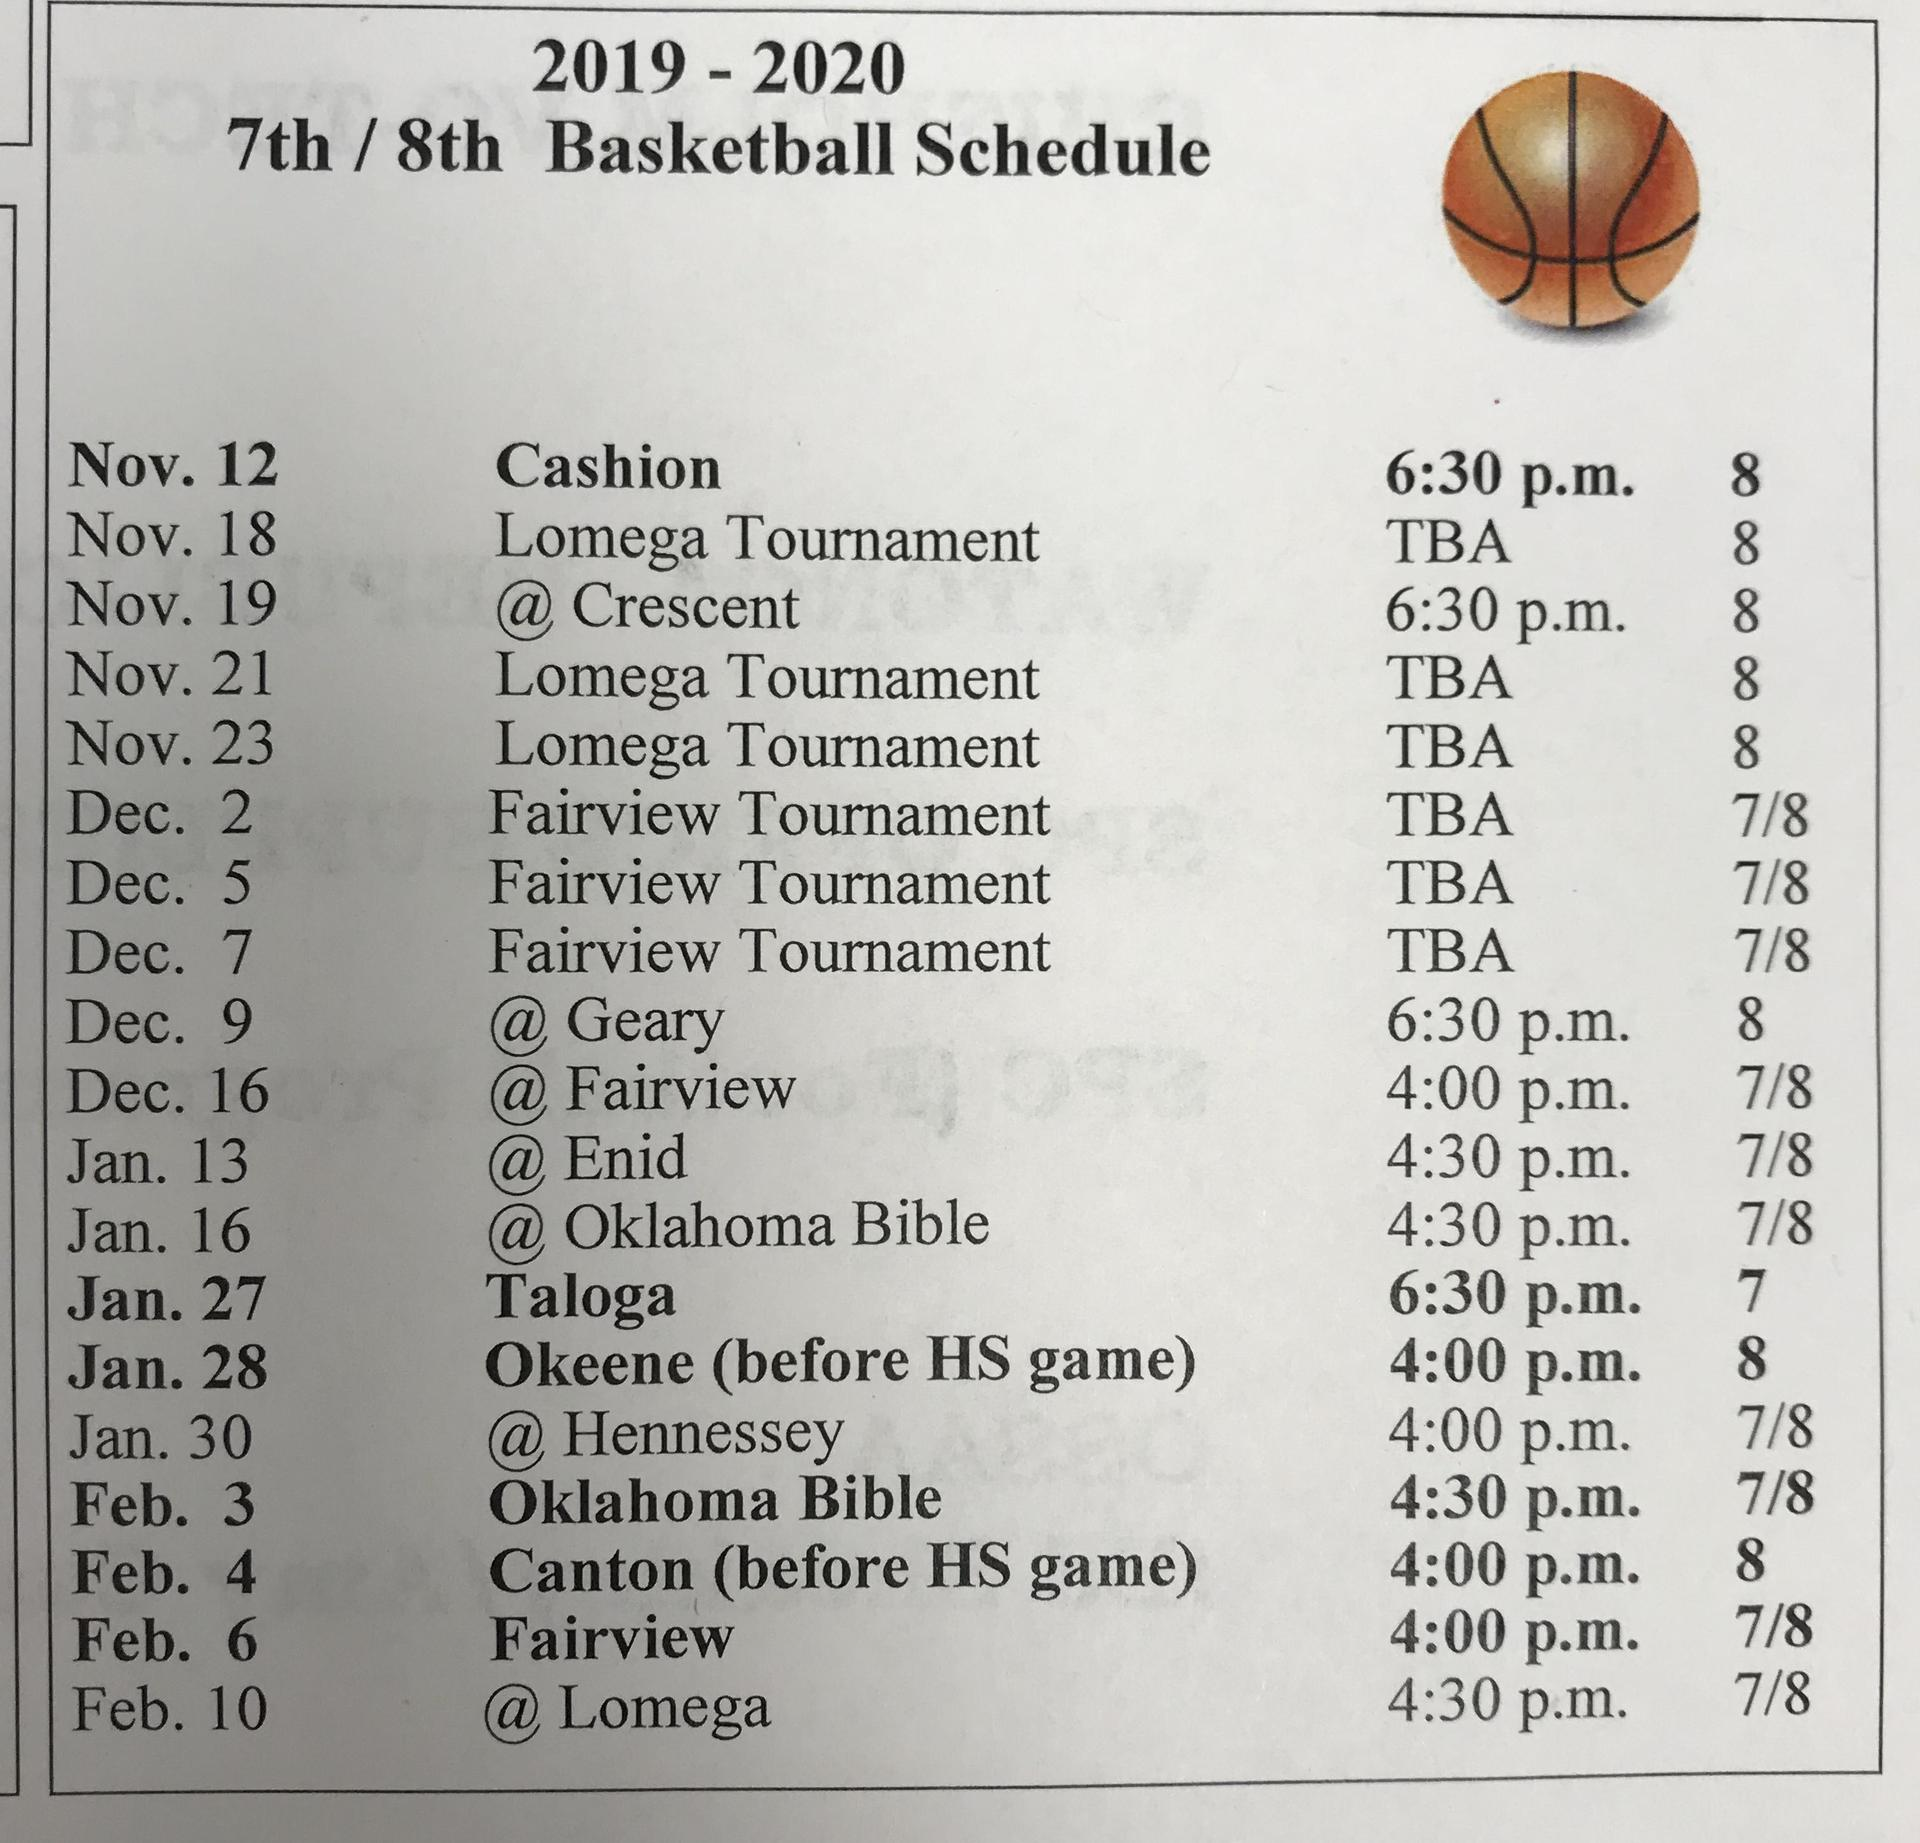 2019-2020 7th/8th Basketball